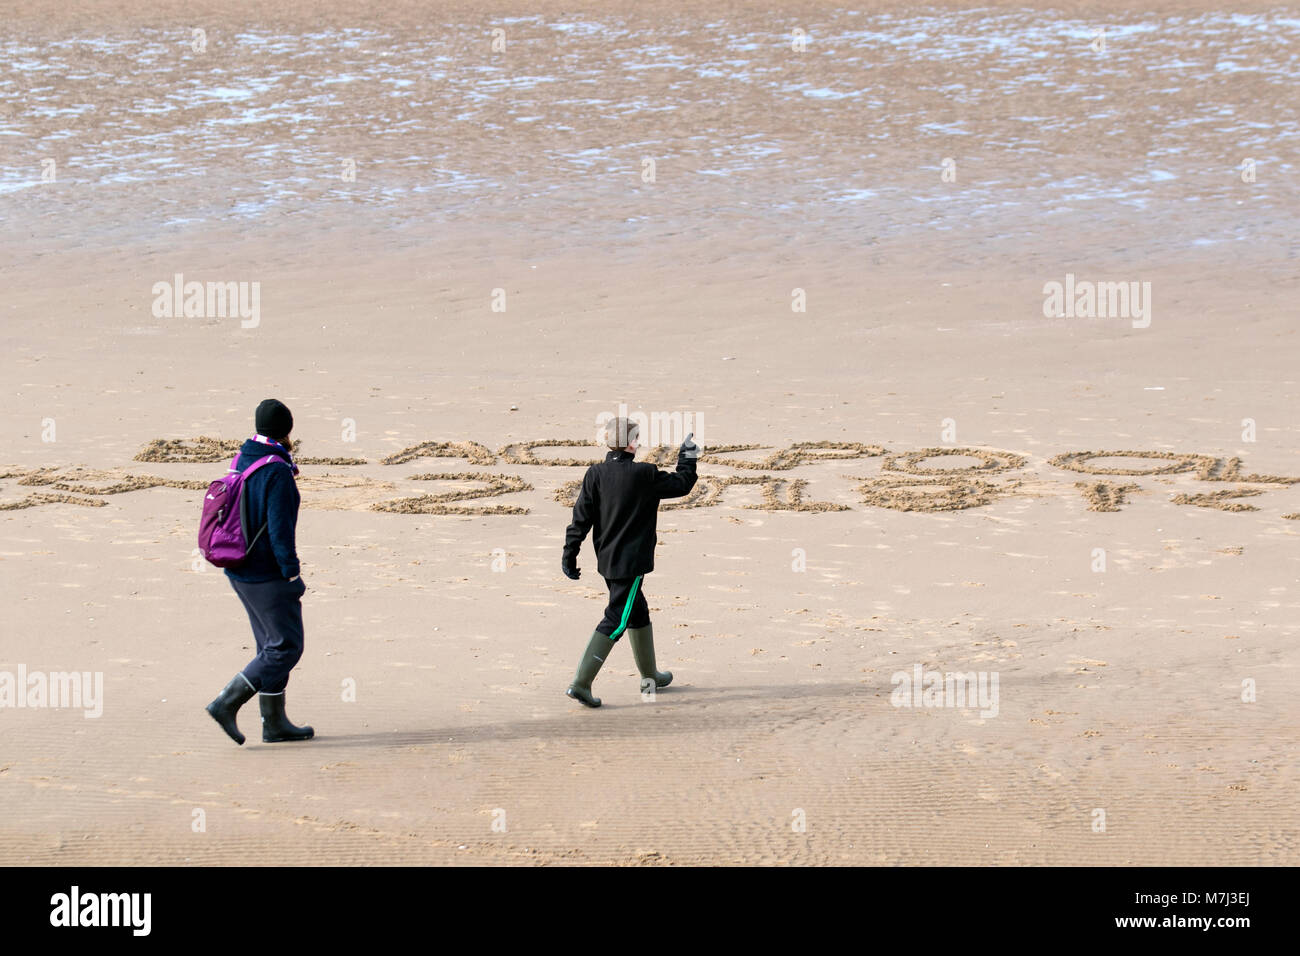 Blackpool, Lancashire. UK Weather. 11th March, 2018. Warm spring day at the coast as holidaymakers and tourists - Stock Image